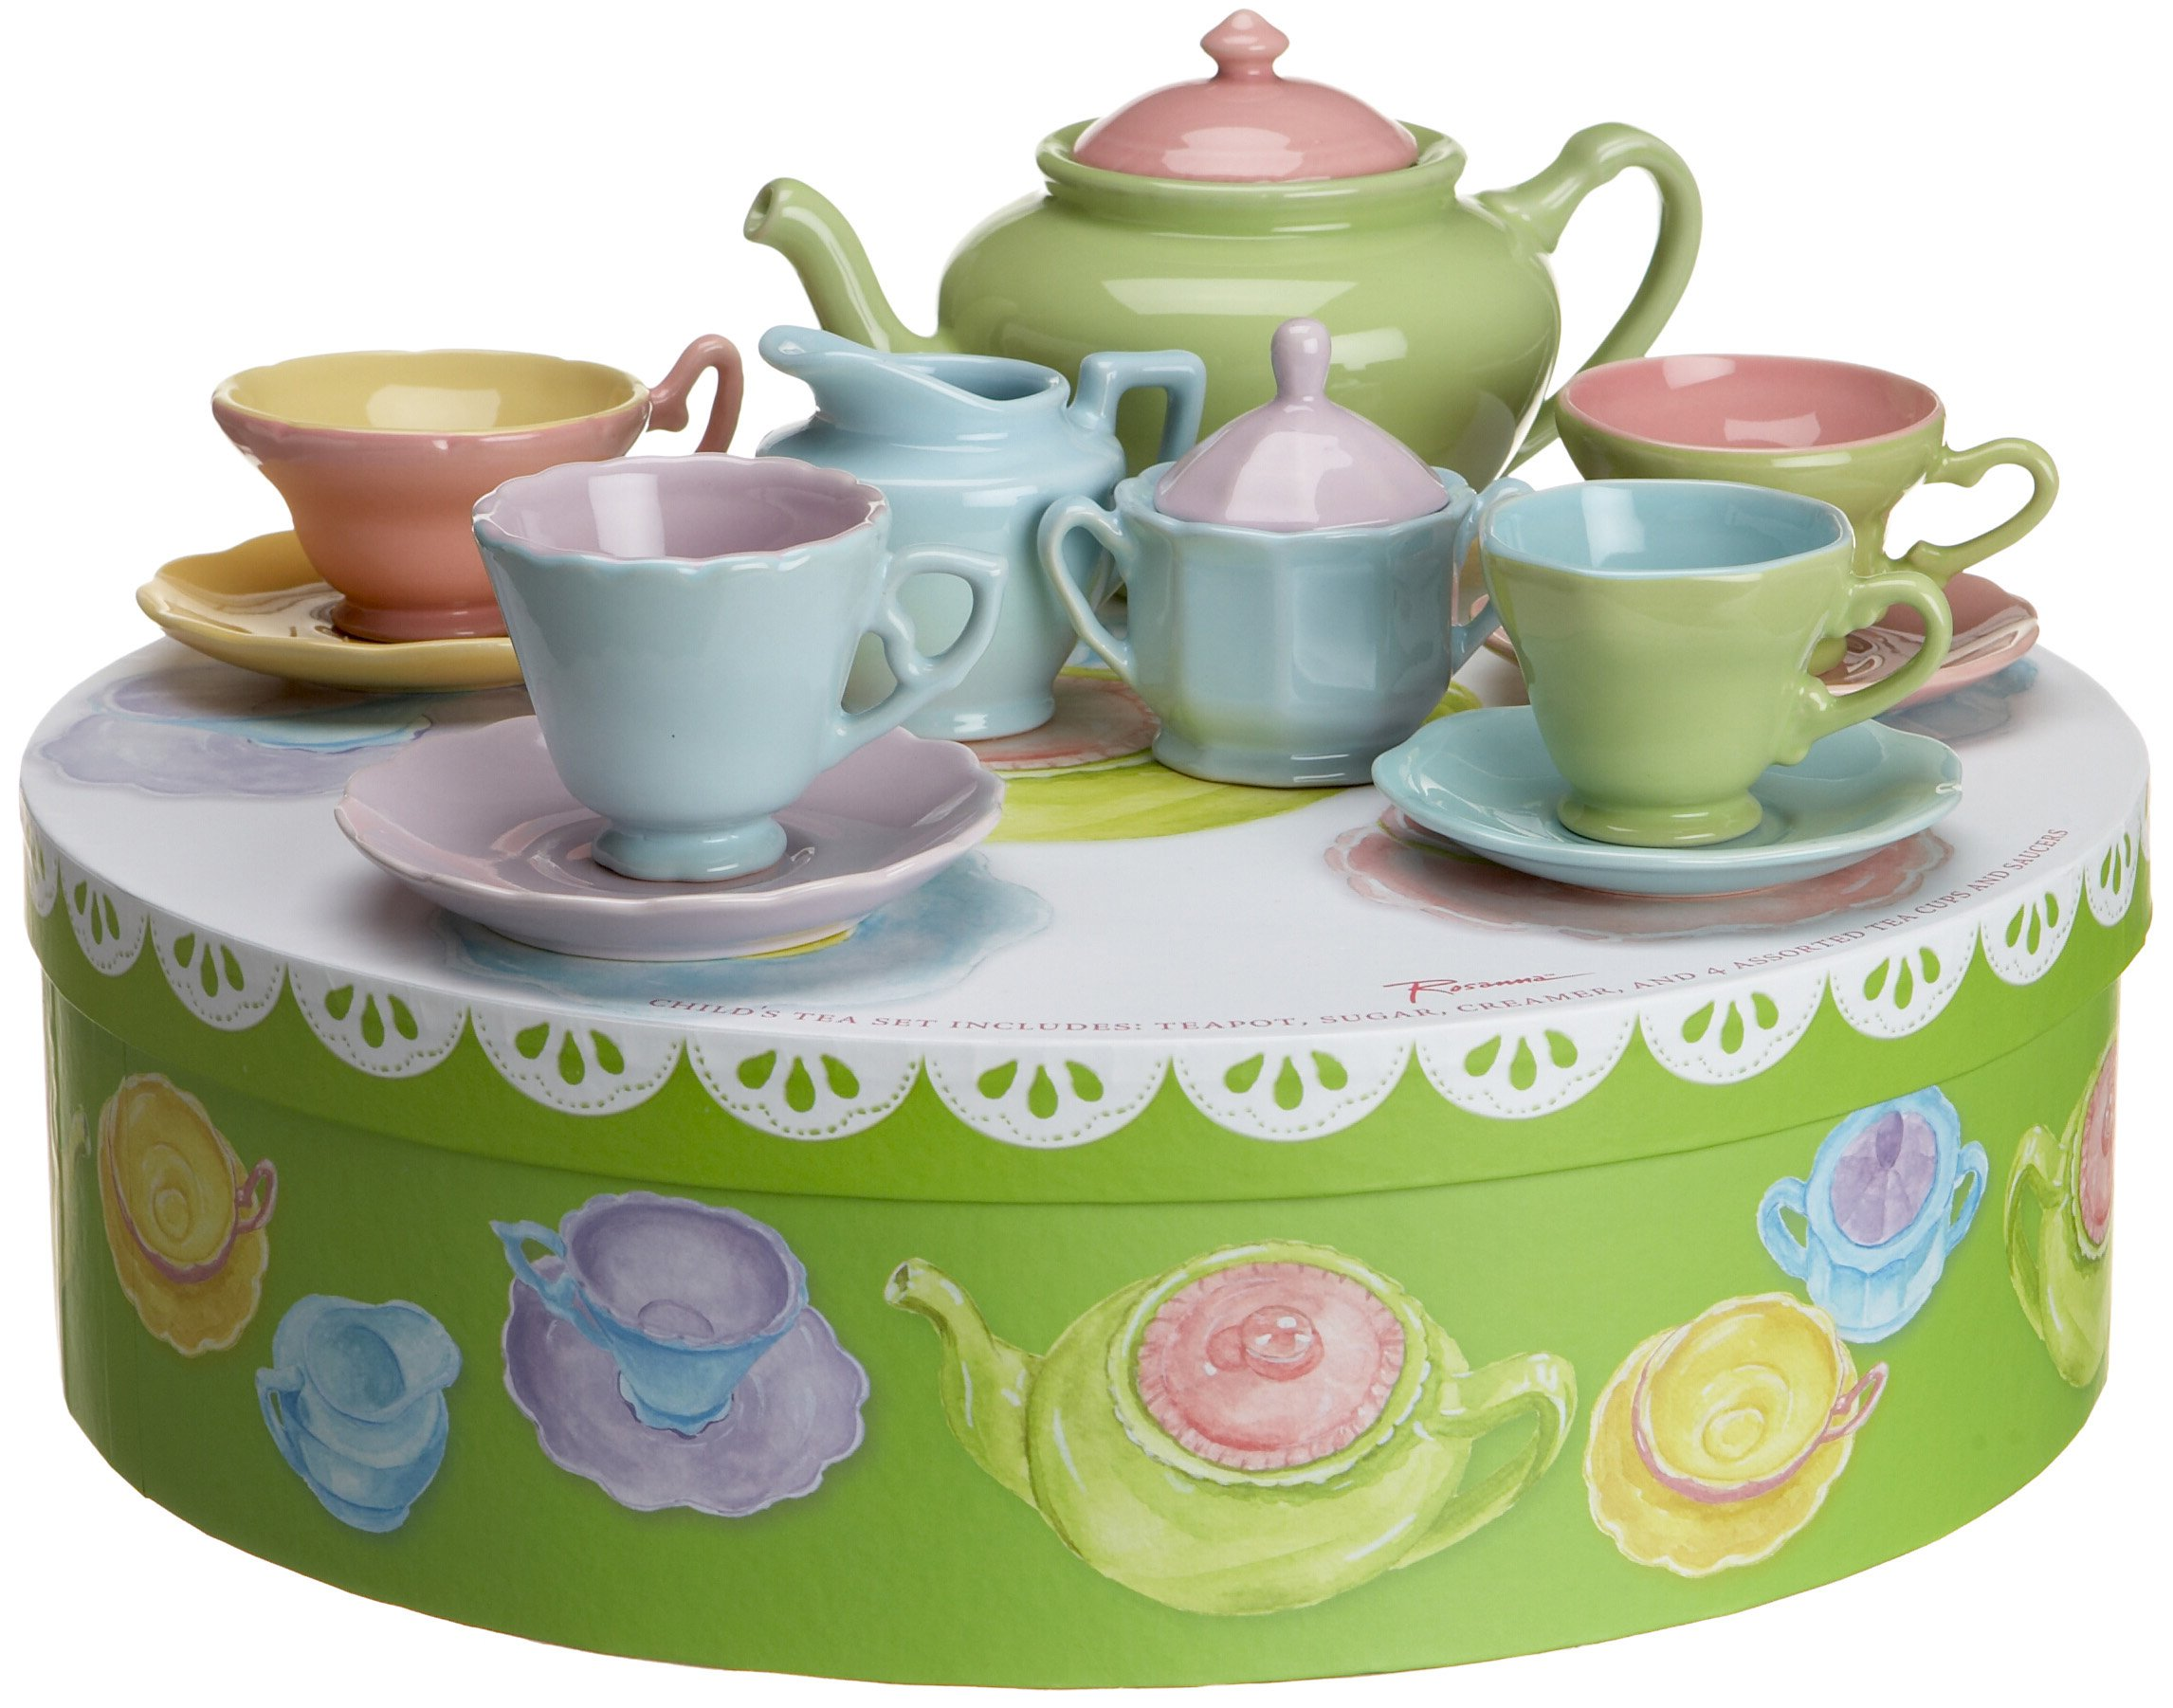 Rosanna Tea For Me Too, Gift-boxed Children's Tea Set, Service for 4